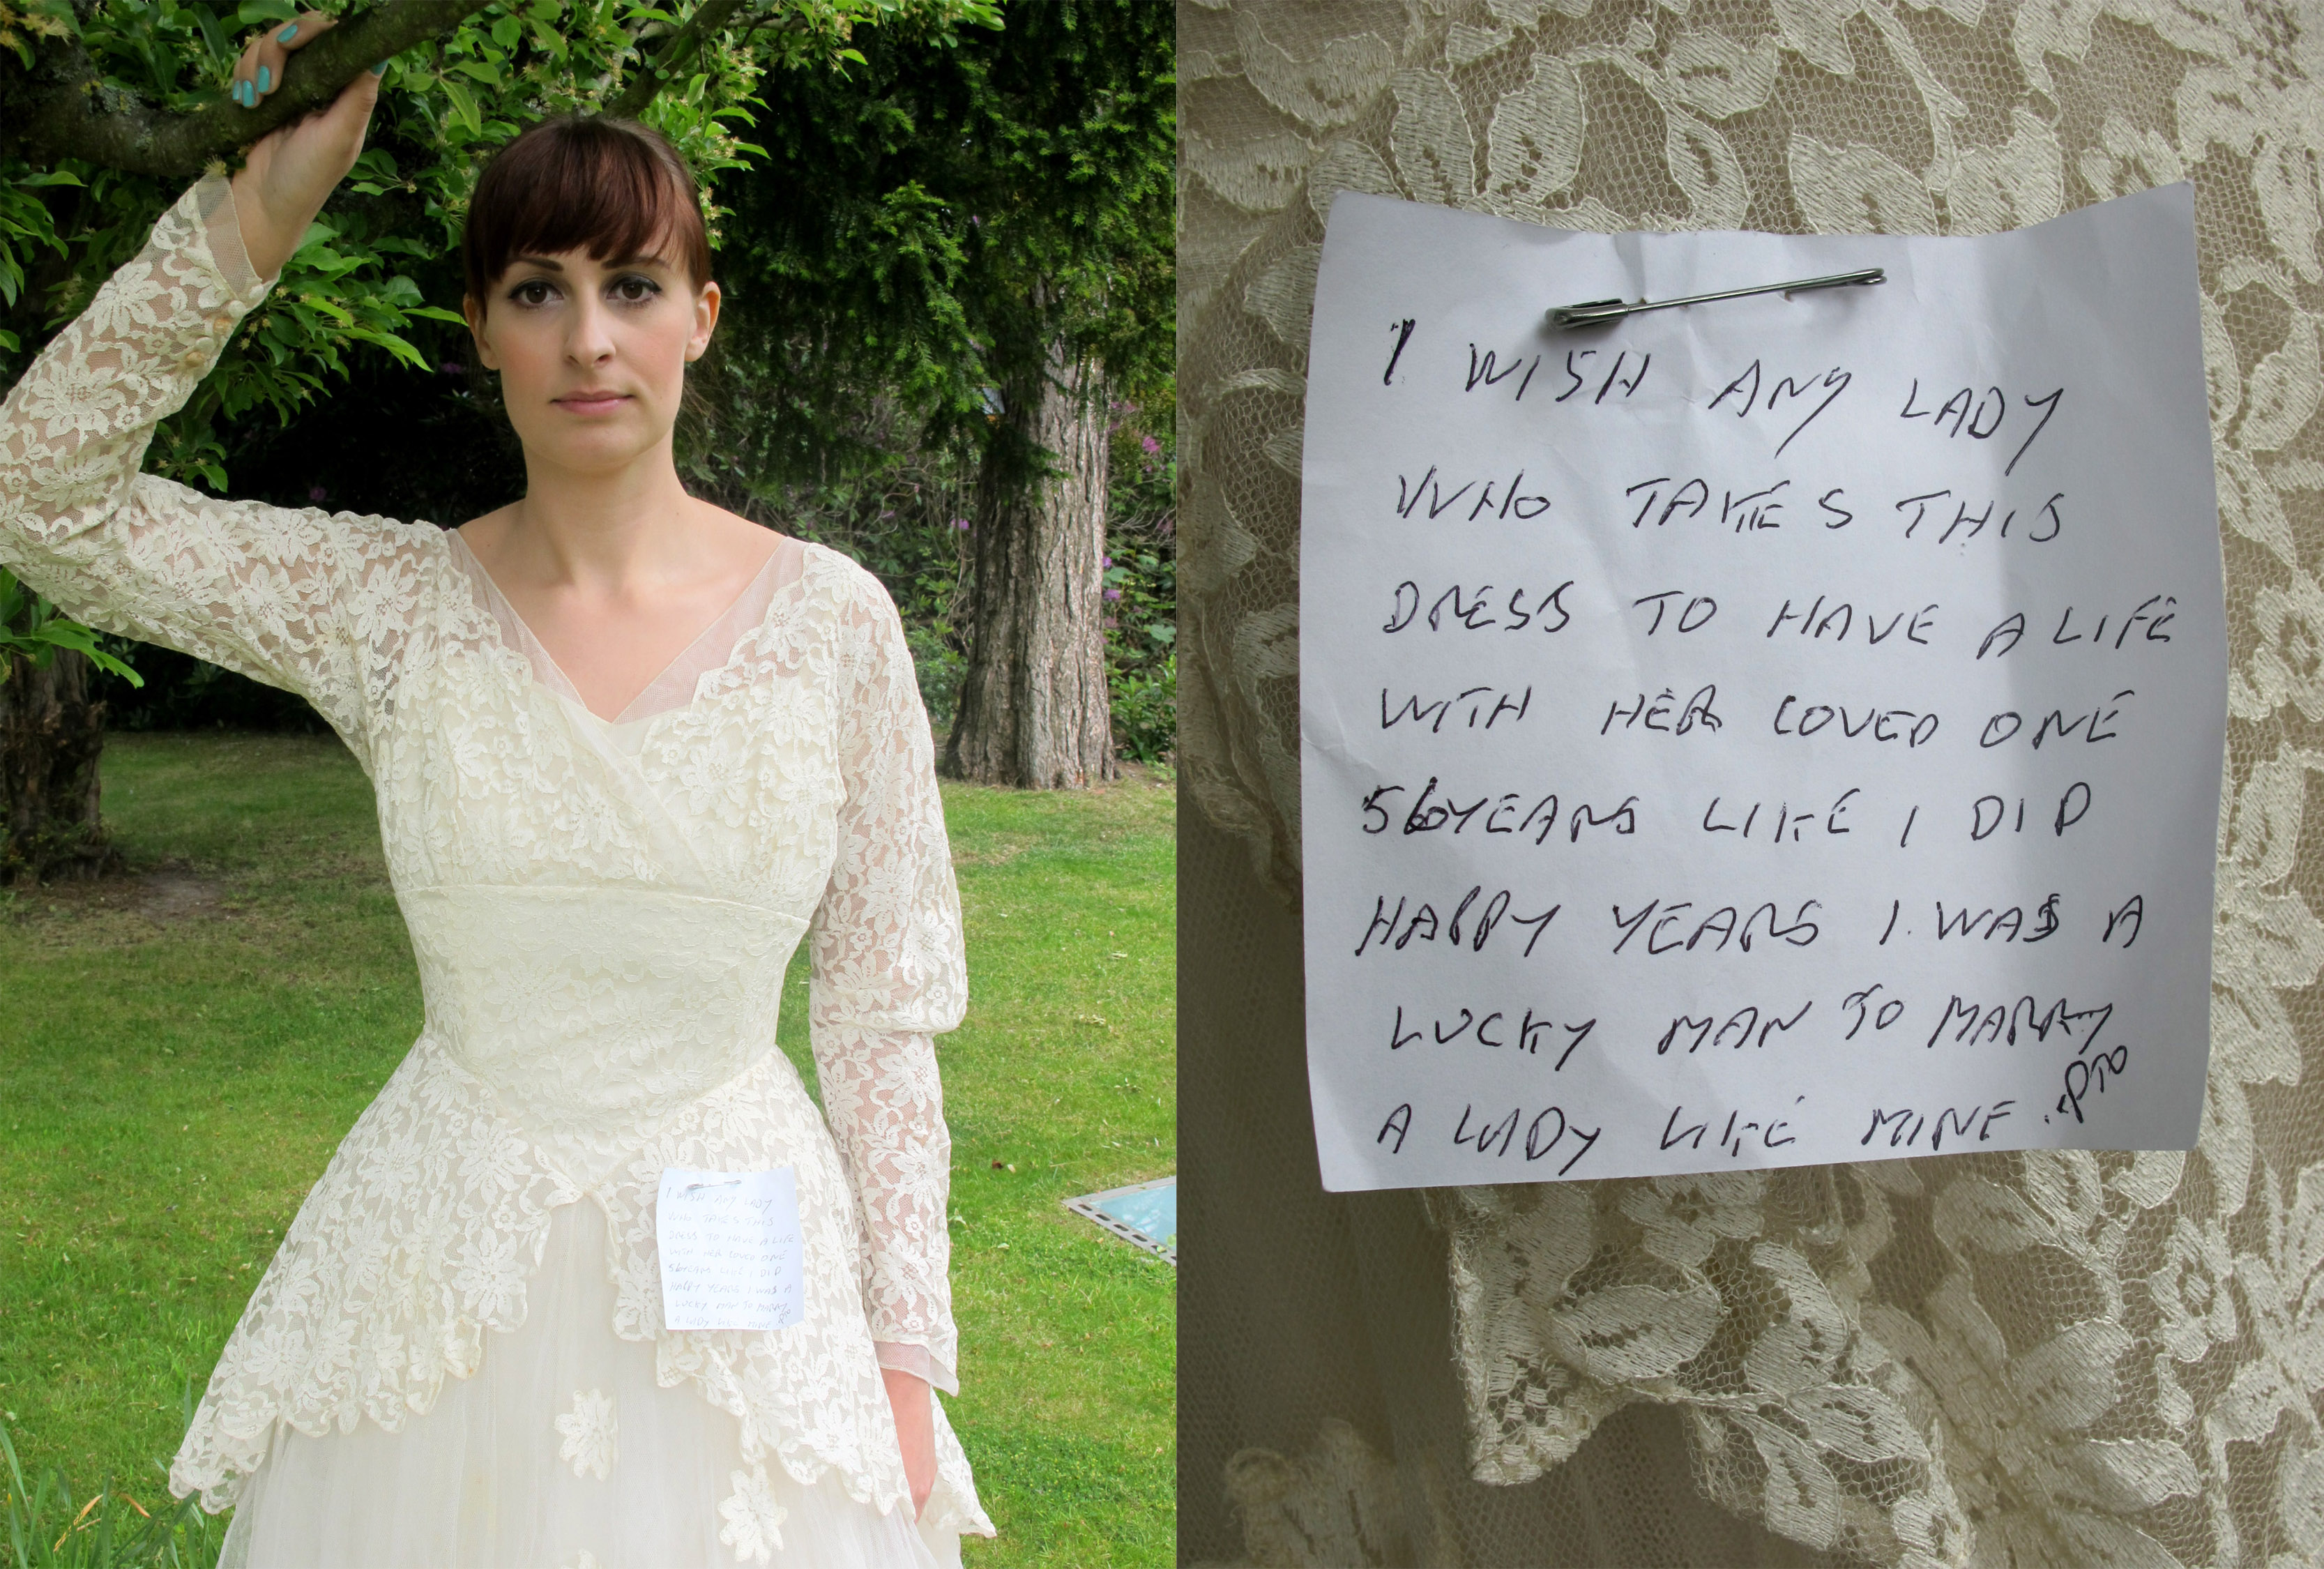 Wedding Dress With Note : Note left on wedding dress donated to charity by pensioner